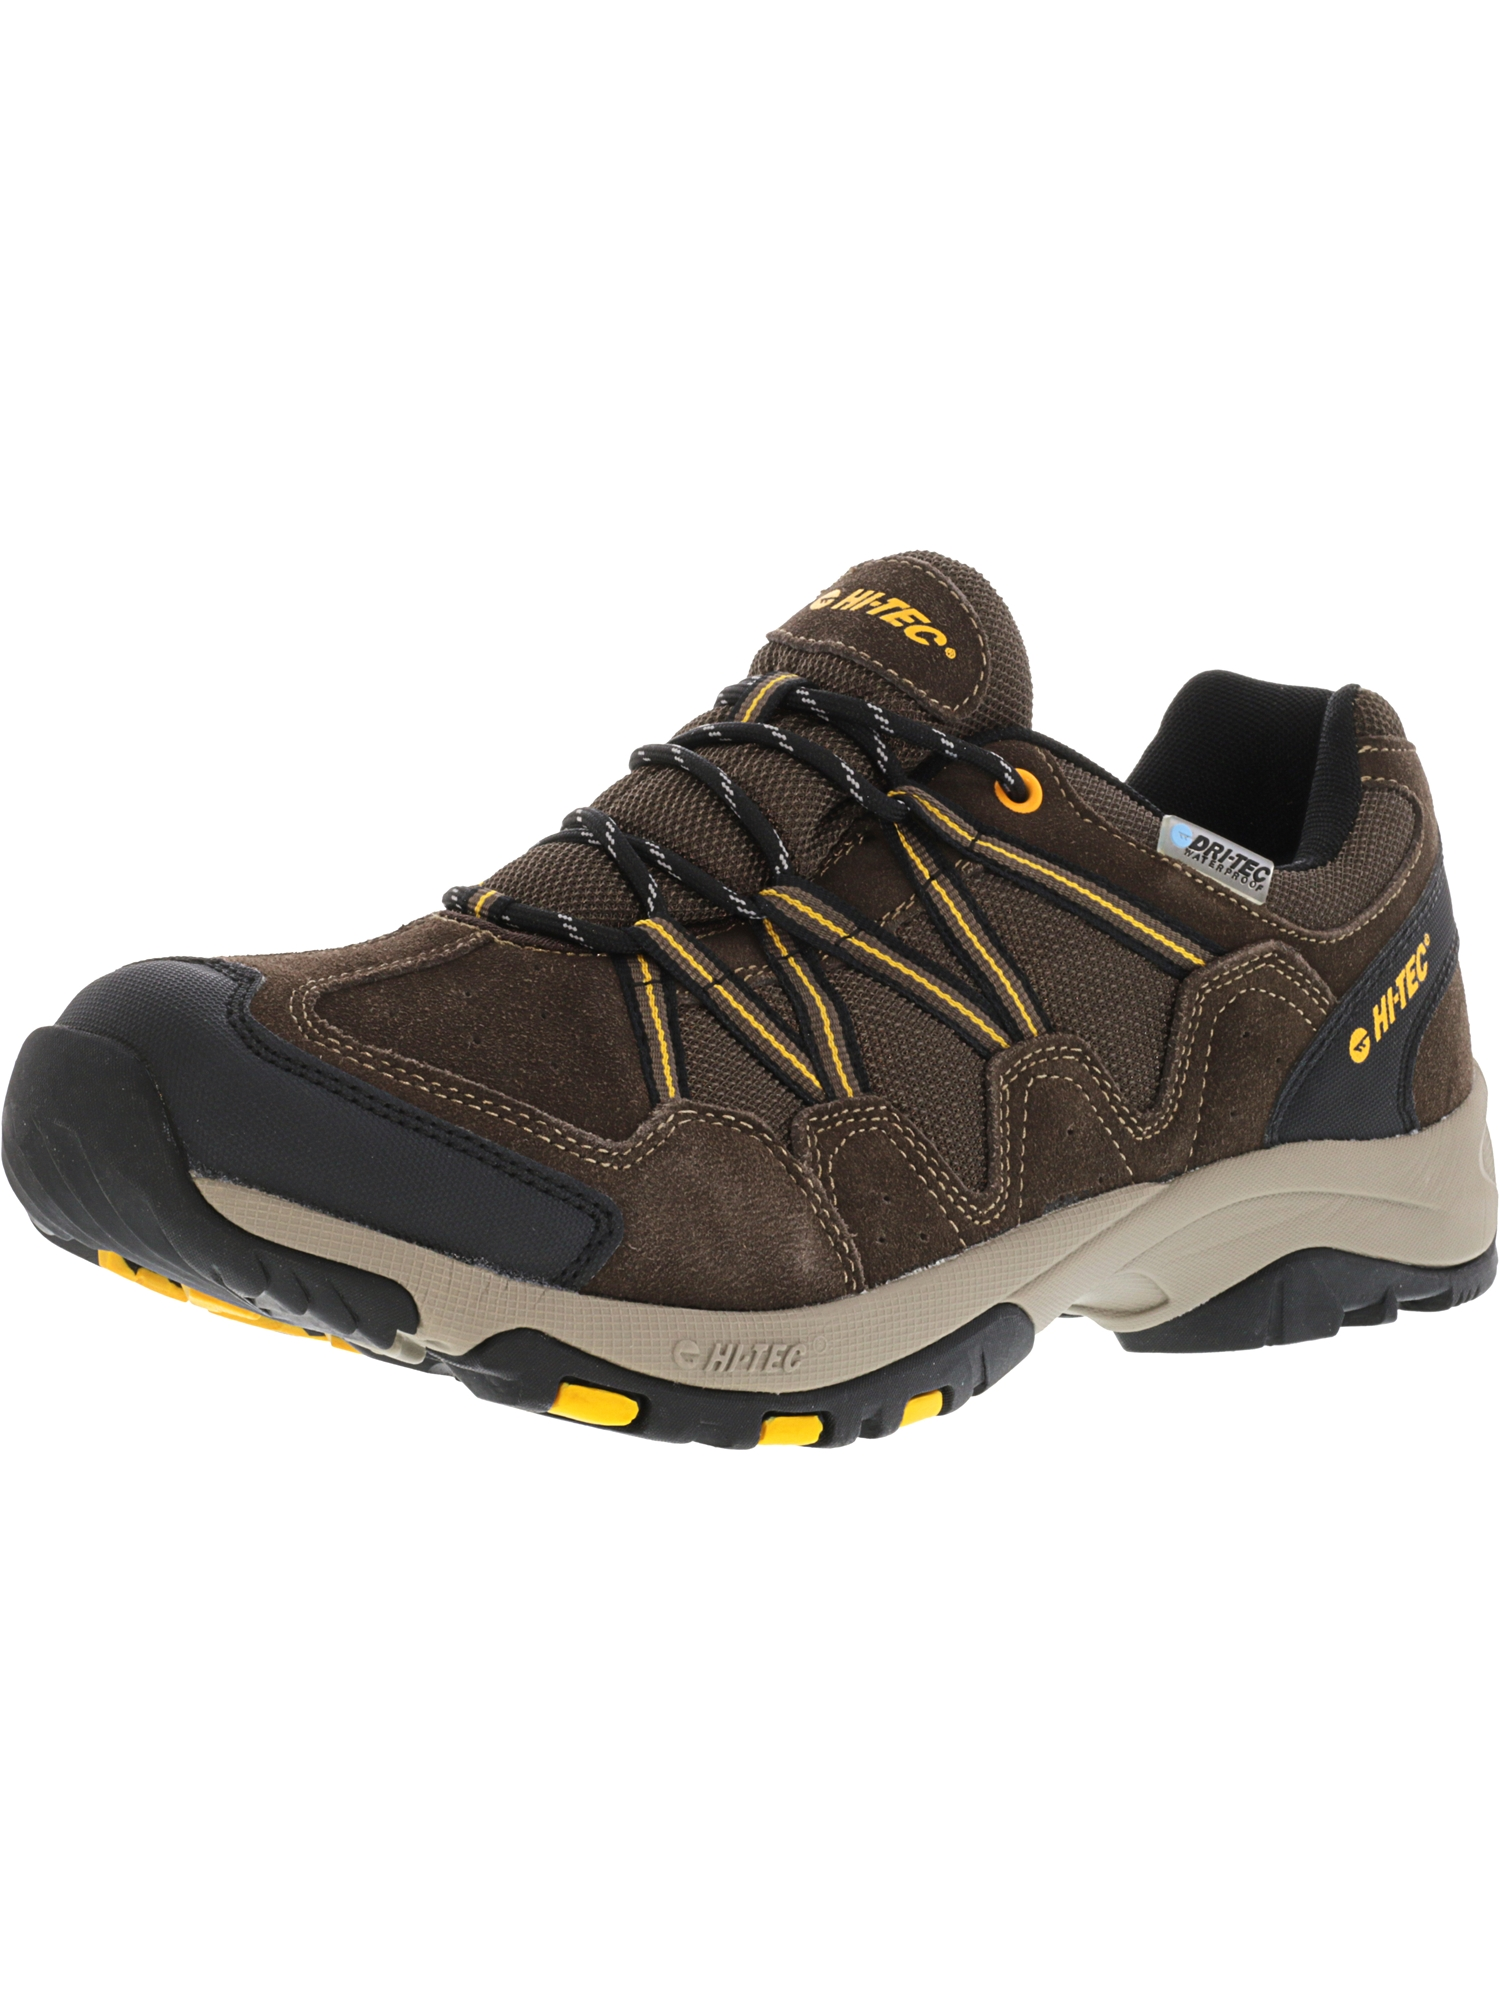 Core Gold Ankle-High Mesh Hiking Shoe